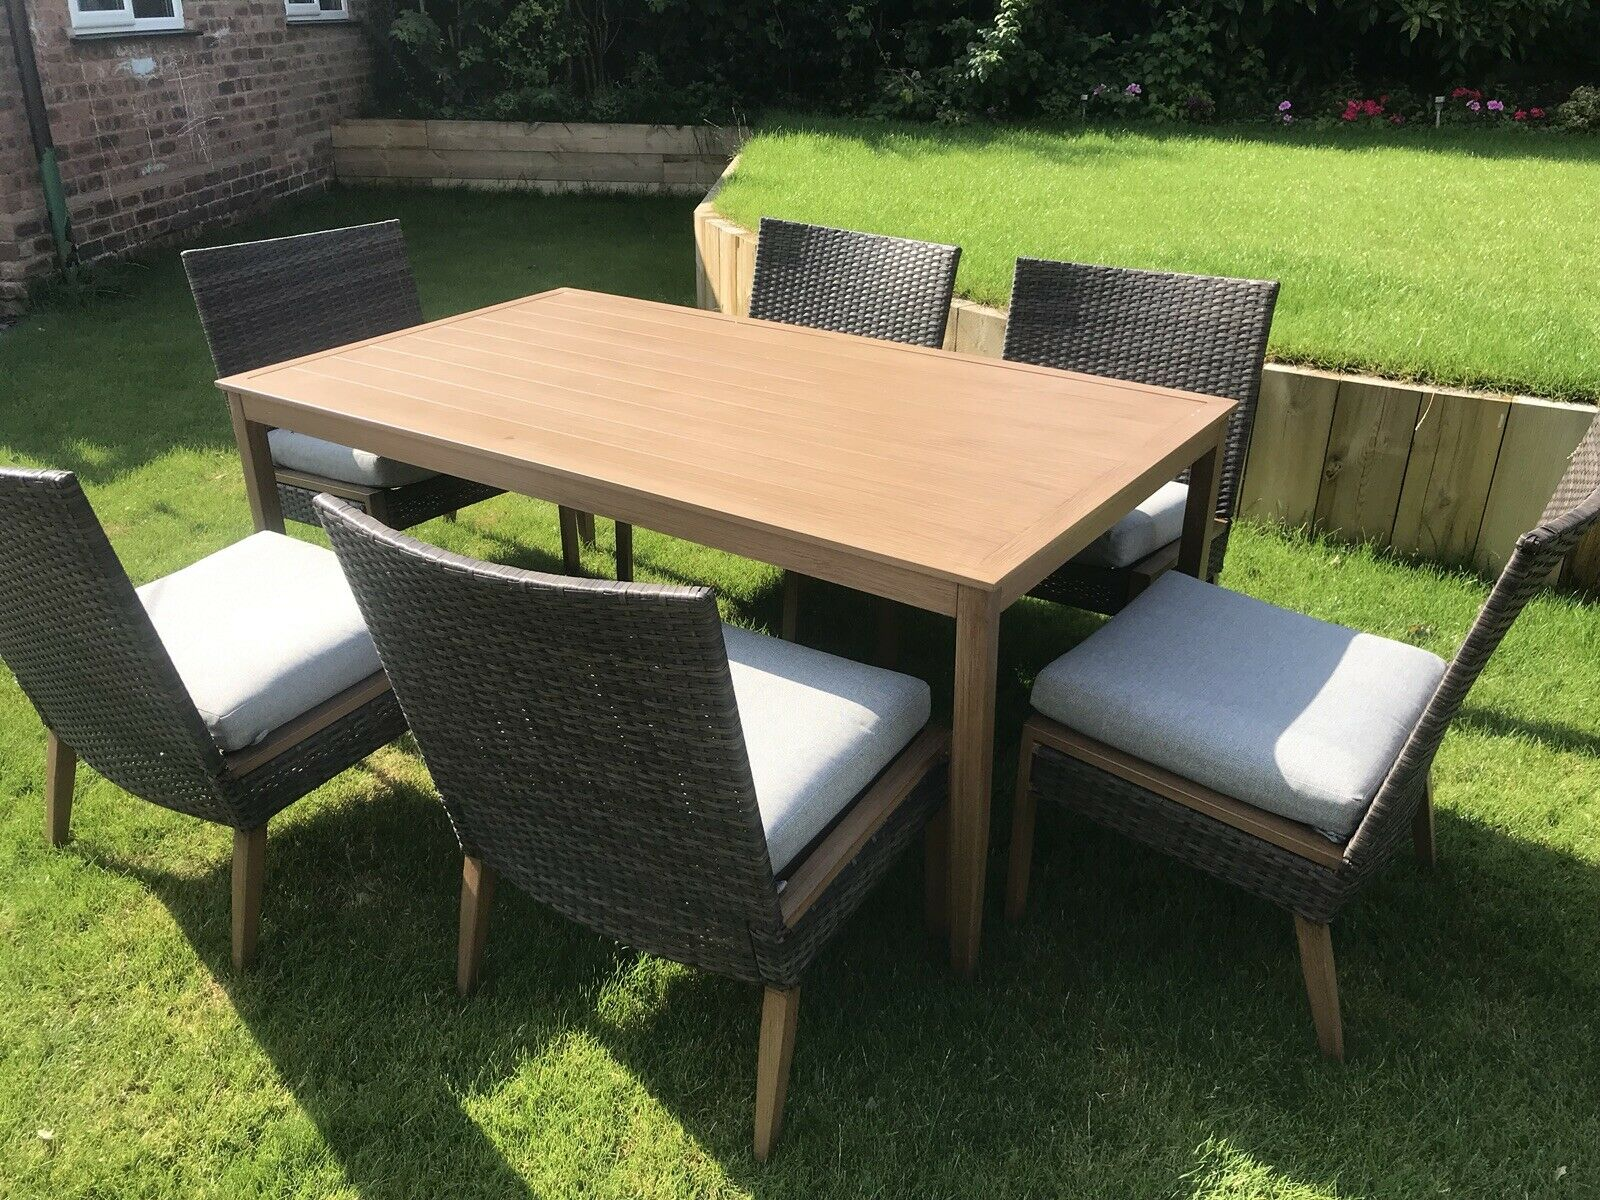 6 Seater Patio Dining Set Outdoor Garden Furniture Table And Chairs With Cushion